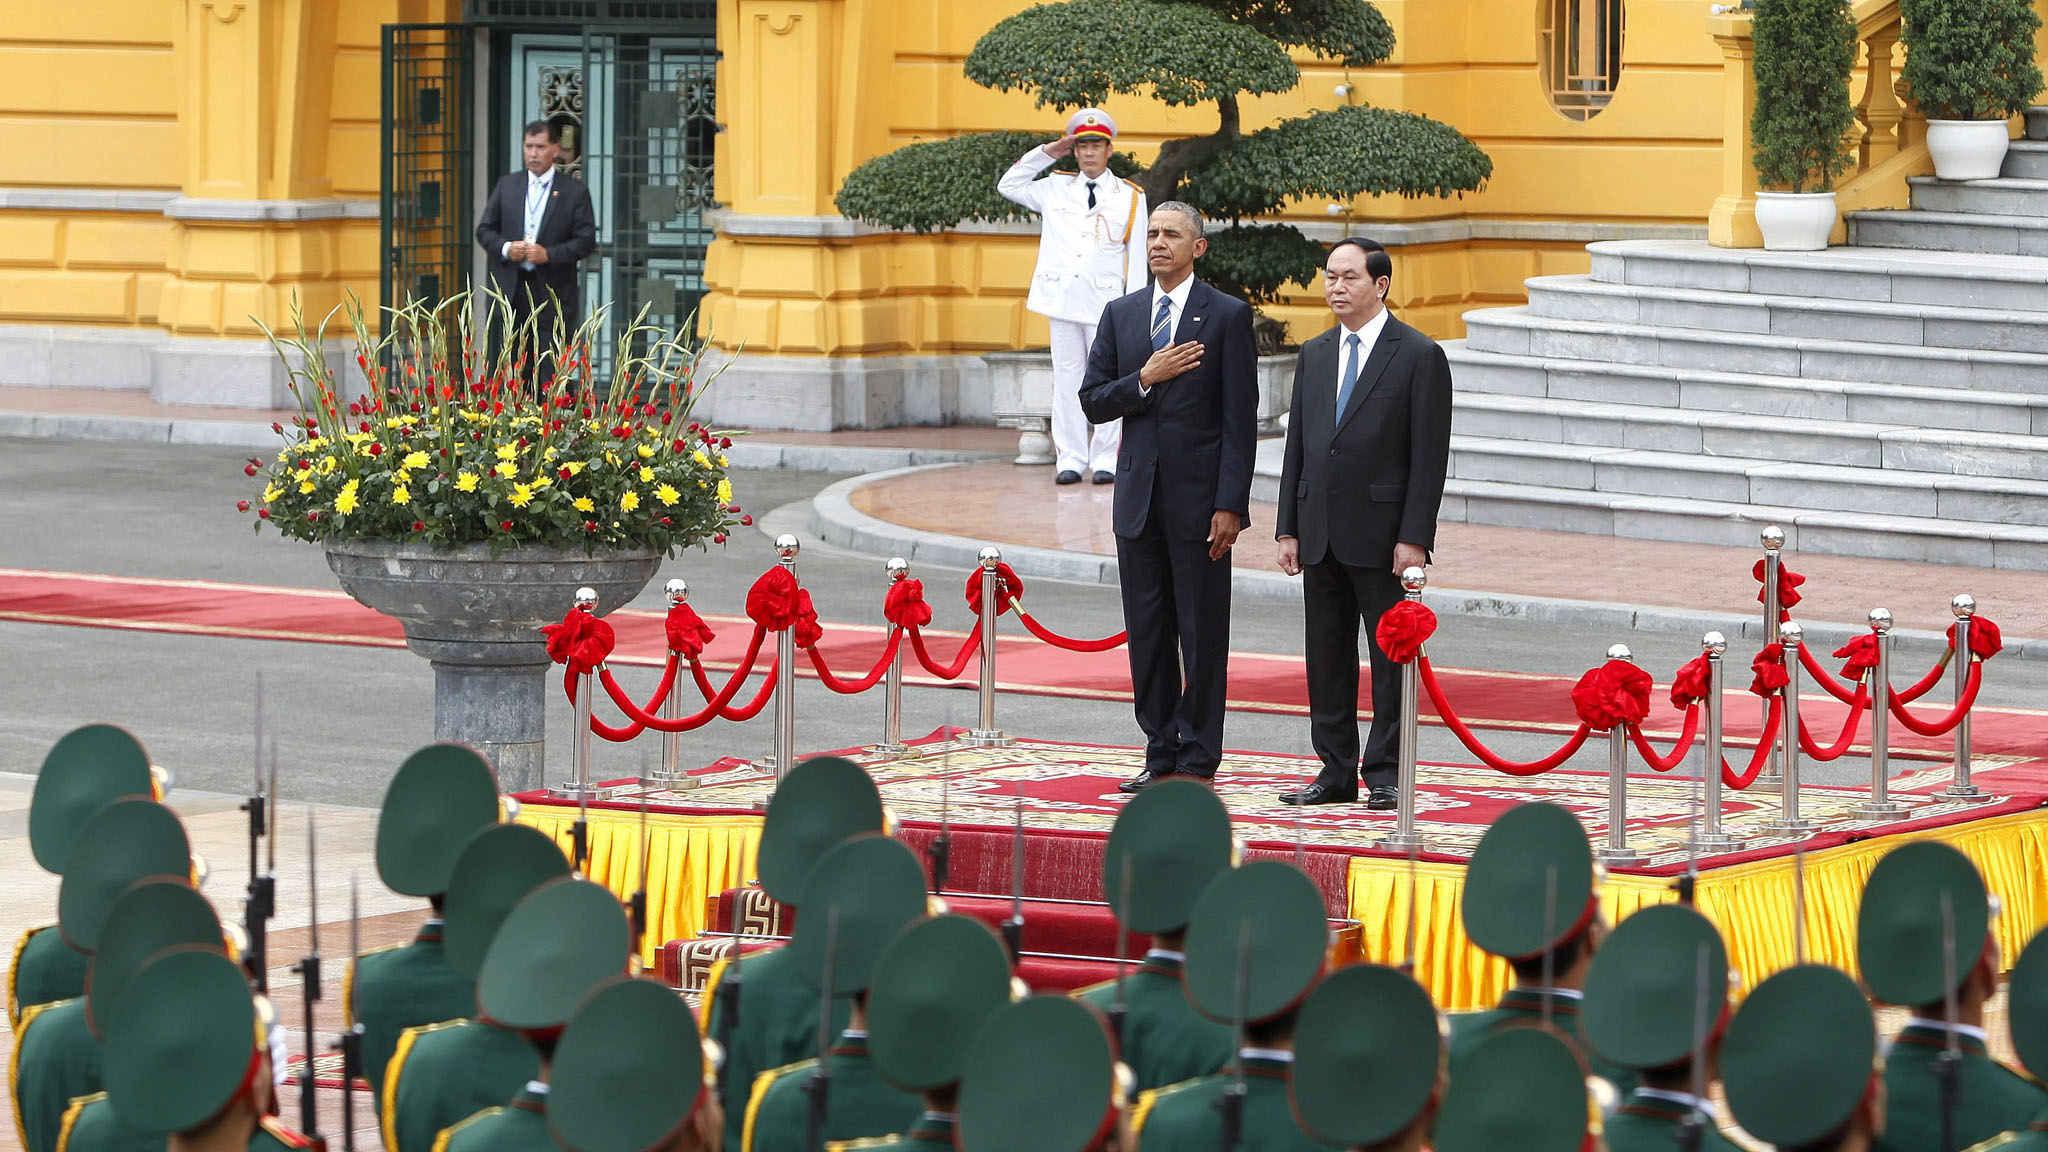 epa05324585 US President Barack Obama (C-L) and Vietnam's President Tran Dai Quang (C-R) review an honor guard at the Presidential Palace in Hanoi, Vietnam, 23 May 2016. US President Barack Obama visits Vietnam for the first time from 23 to 25 May 2016, making him the third US President to visit the South East Asian country since the end of the Vietnam War in 1975. During the first day of his visit Obama announced that the US will lift its arms embargo on weapon sales to Vietnam. EPA/MINH HOANG